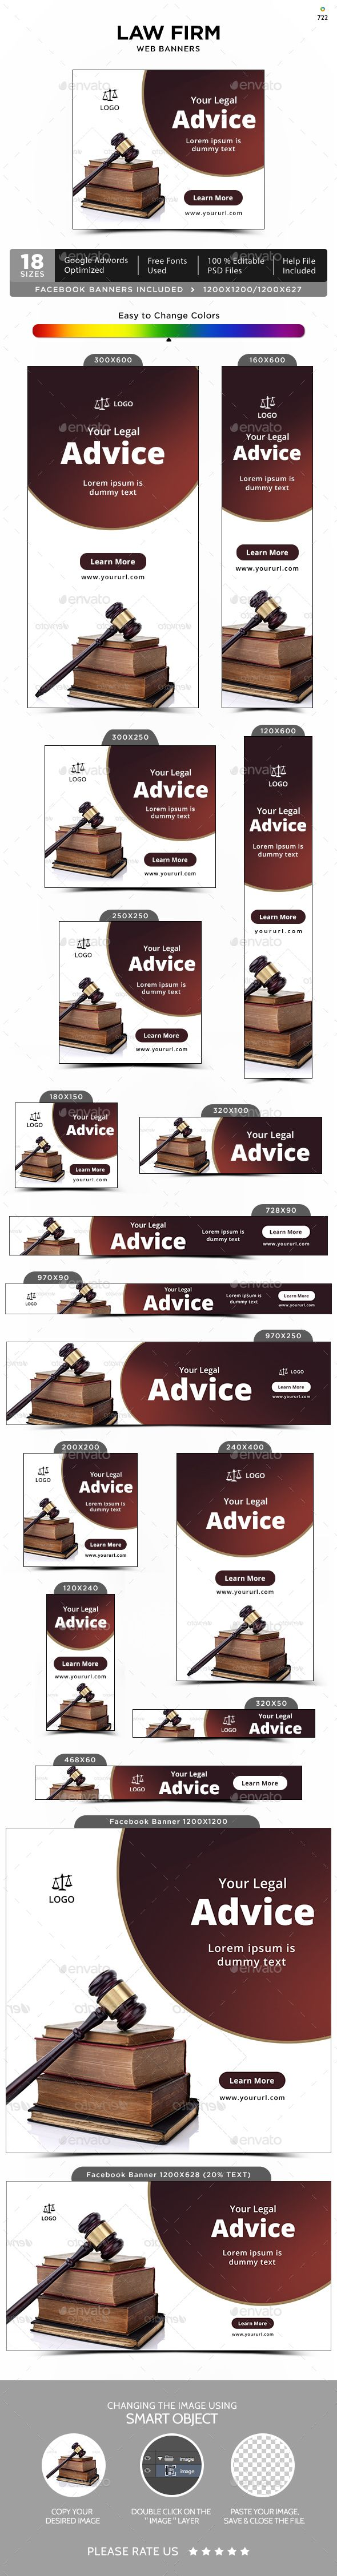 Law Firm Banners - #Banners & Ads #Web Elements